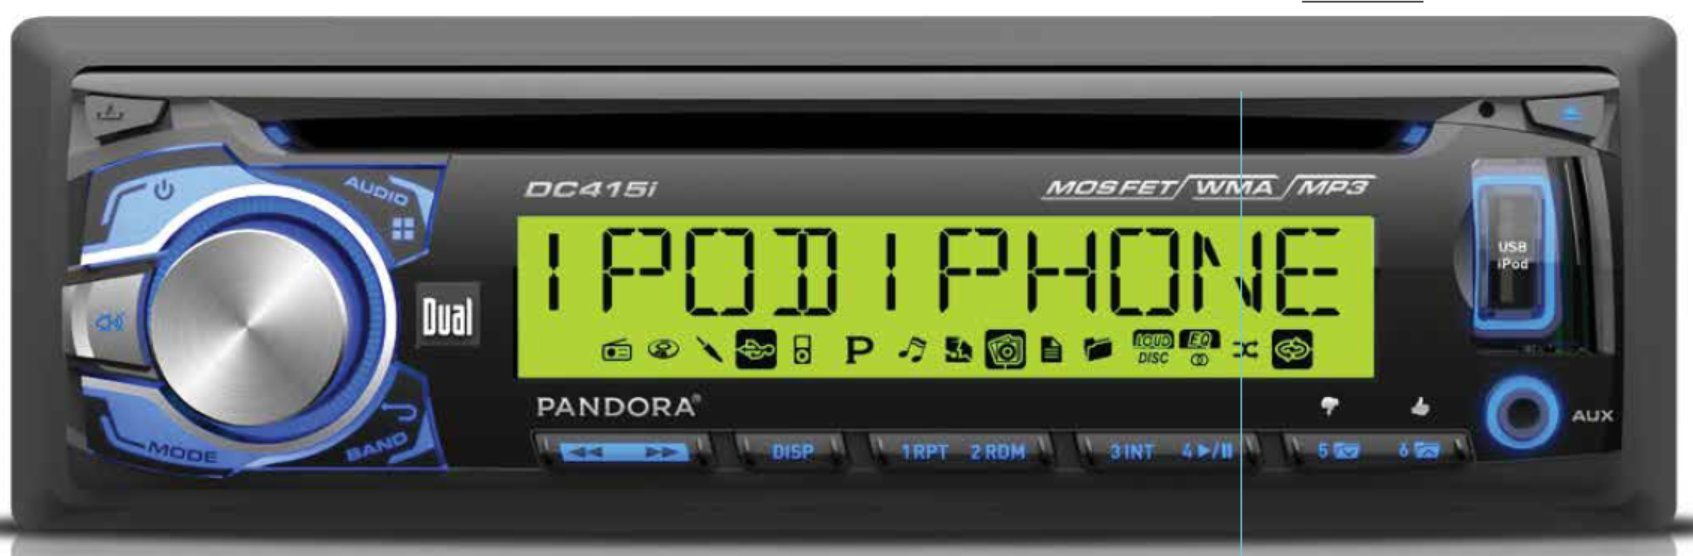 Dual Electronics DC415i Multimedia Detachable 3.7 inch 10 Character LCD Single DIN MOSFET Car Stereo with Built-in CD, USB & MP3 Player